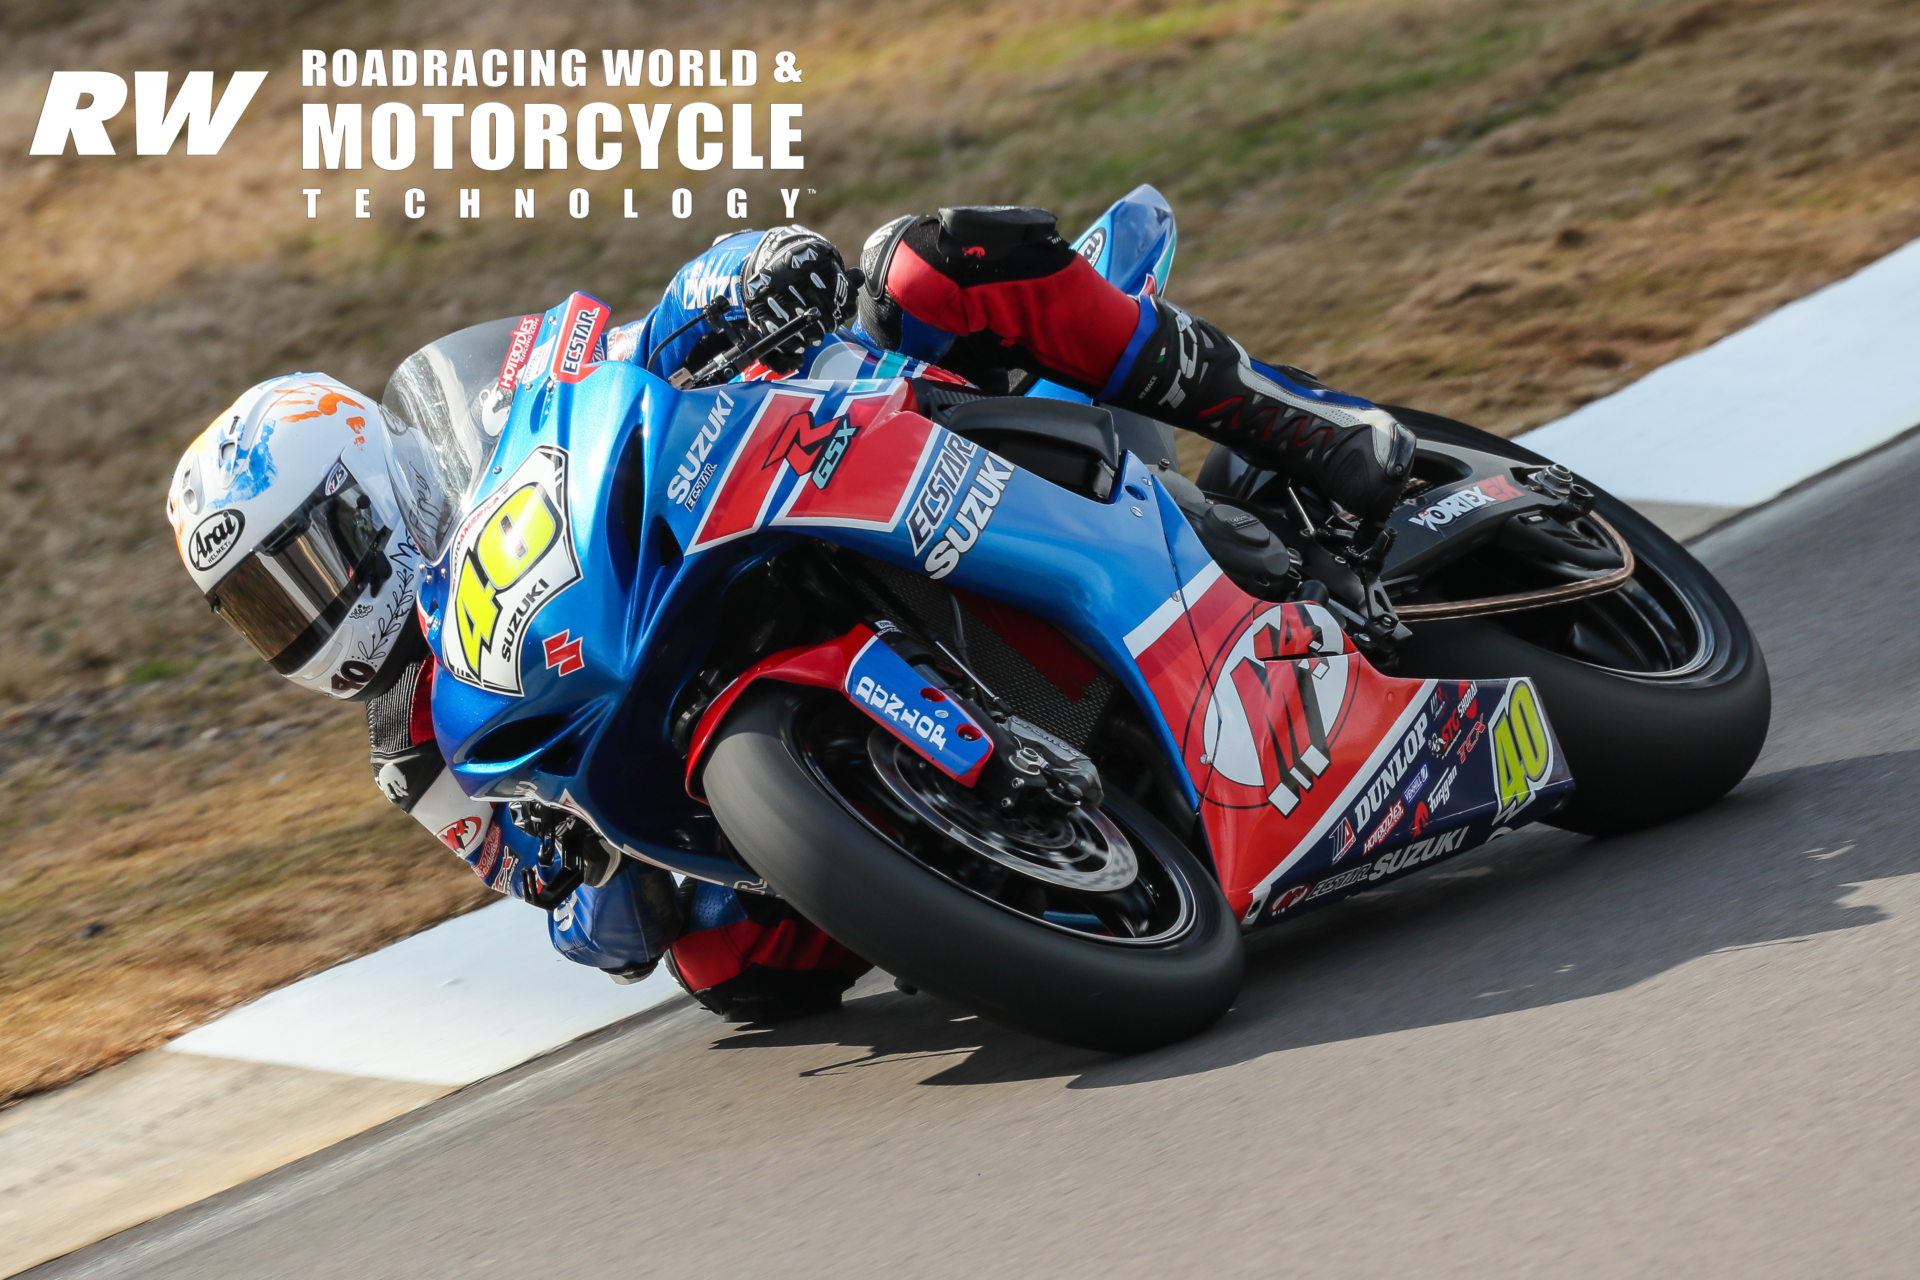 Sean Dylan Kelly (40) at speed during the 2020 MotoAmerica pre-season test at Barber Motorsports Park. Photo by Brian J. Nelson.